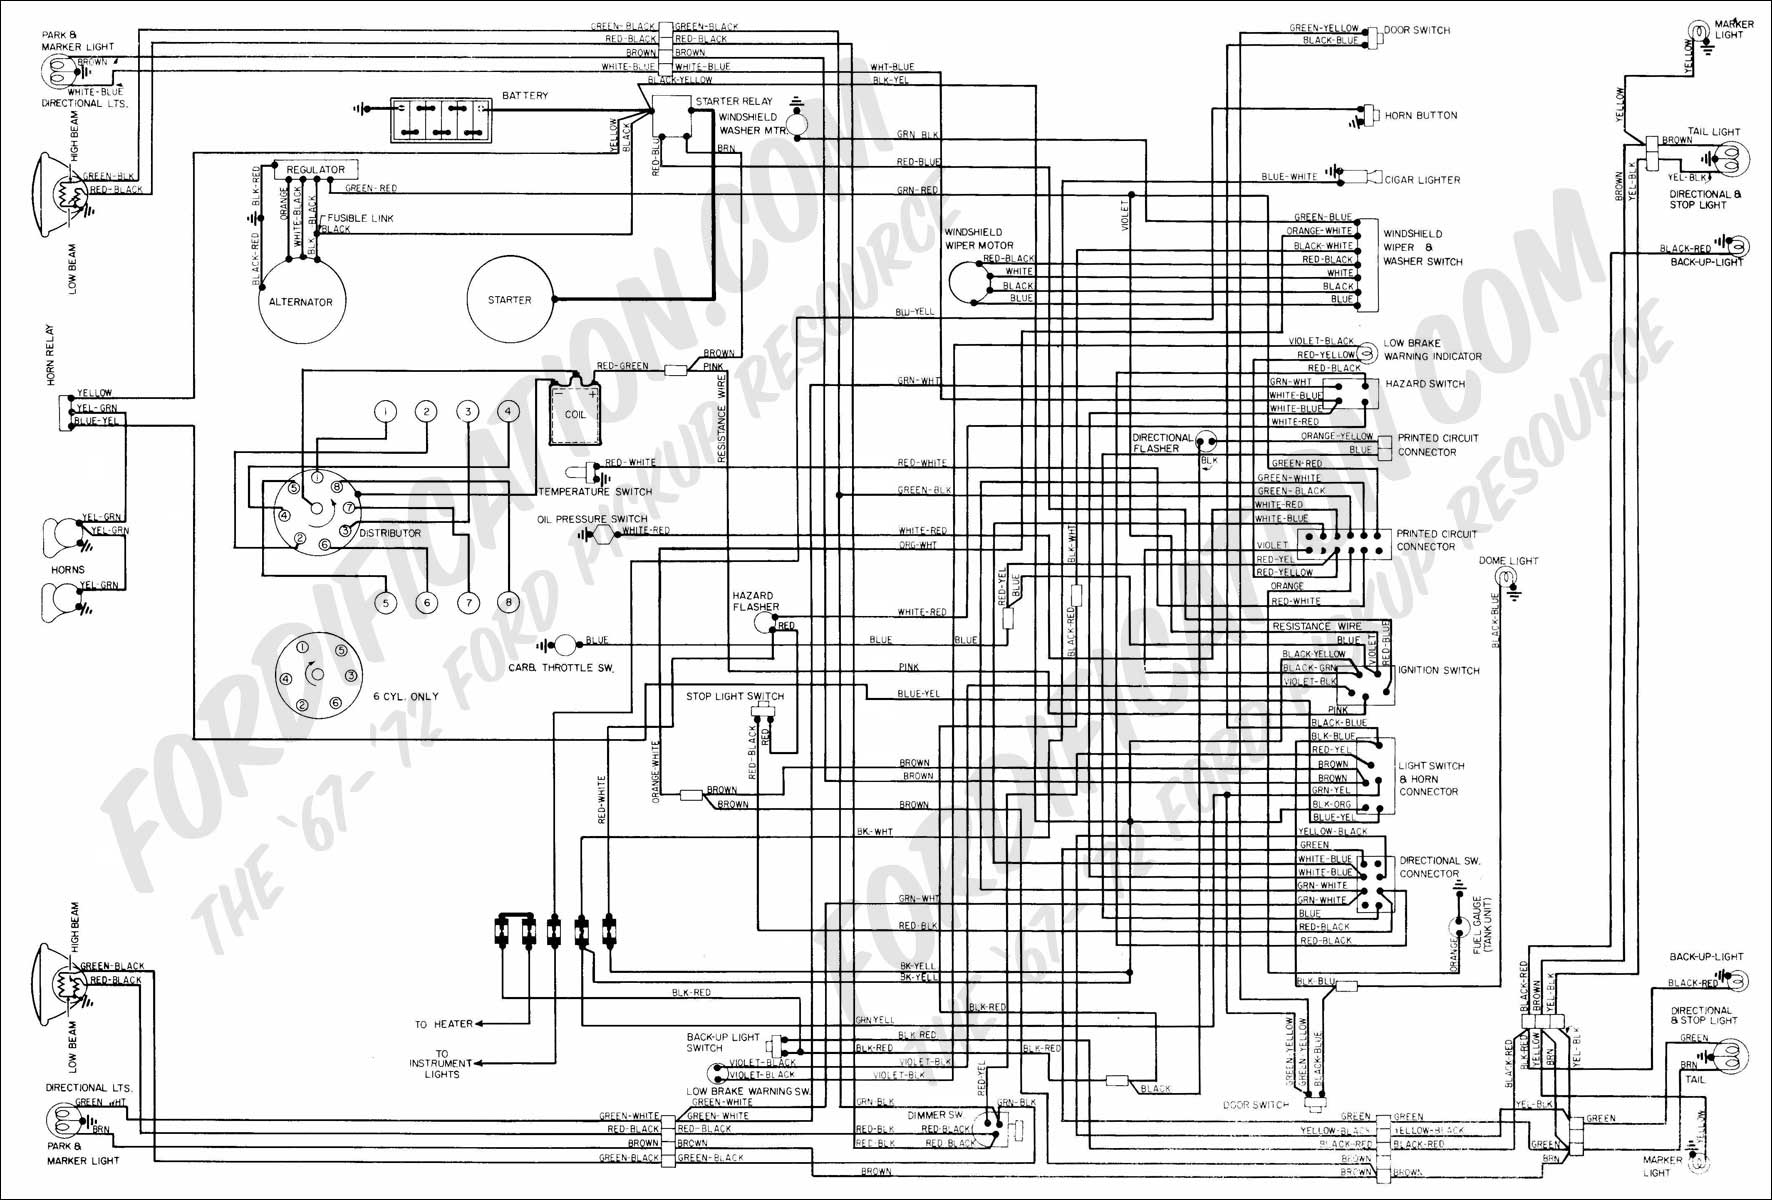 wiring diagram for 2006 f250 wiring diagram rh blaknwyt co 2006 ford fusion wiring diagram 2006 ford escape wiring diagram